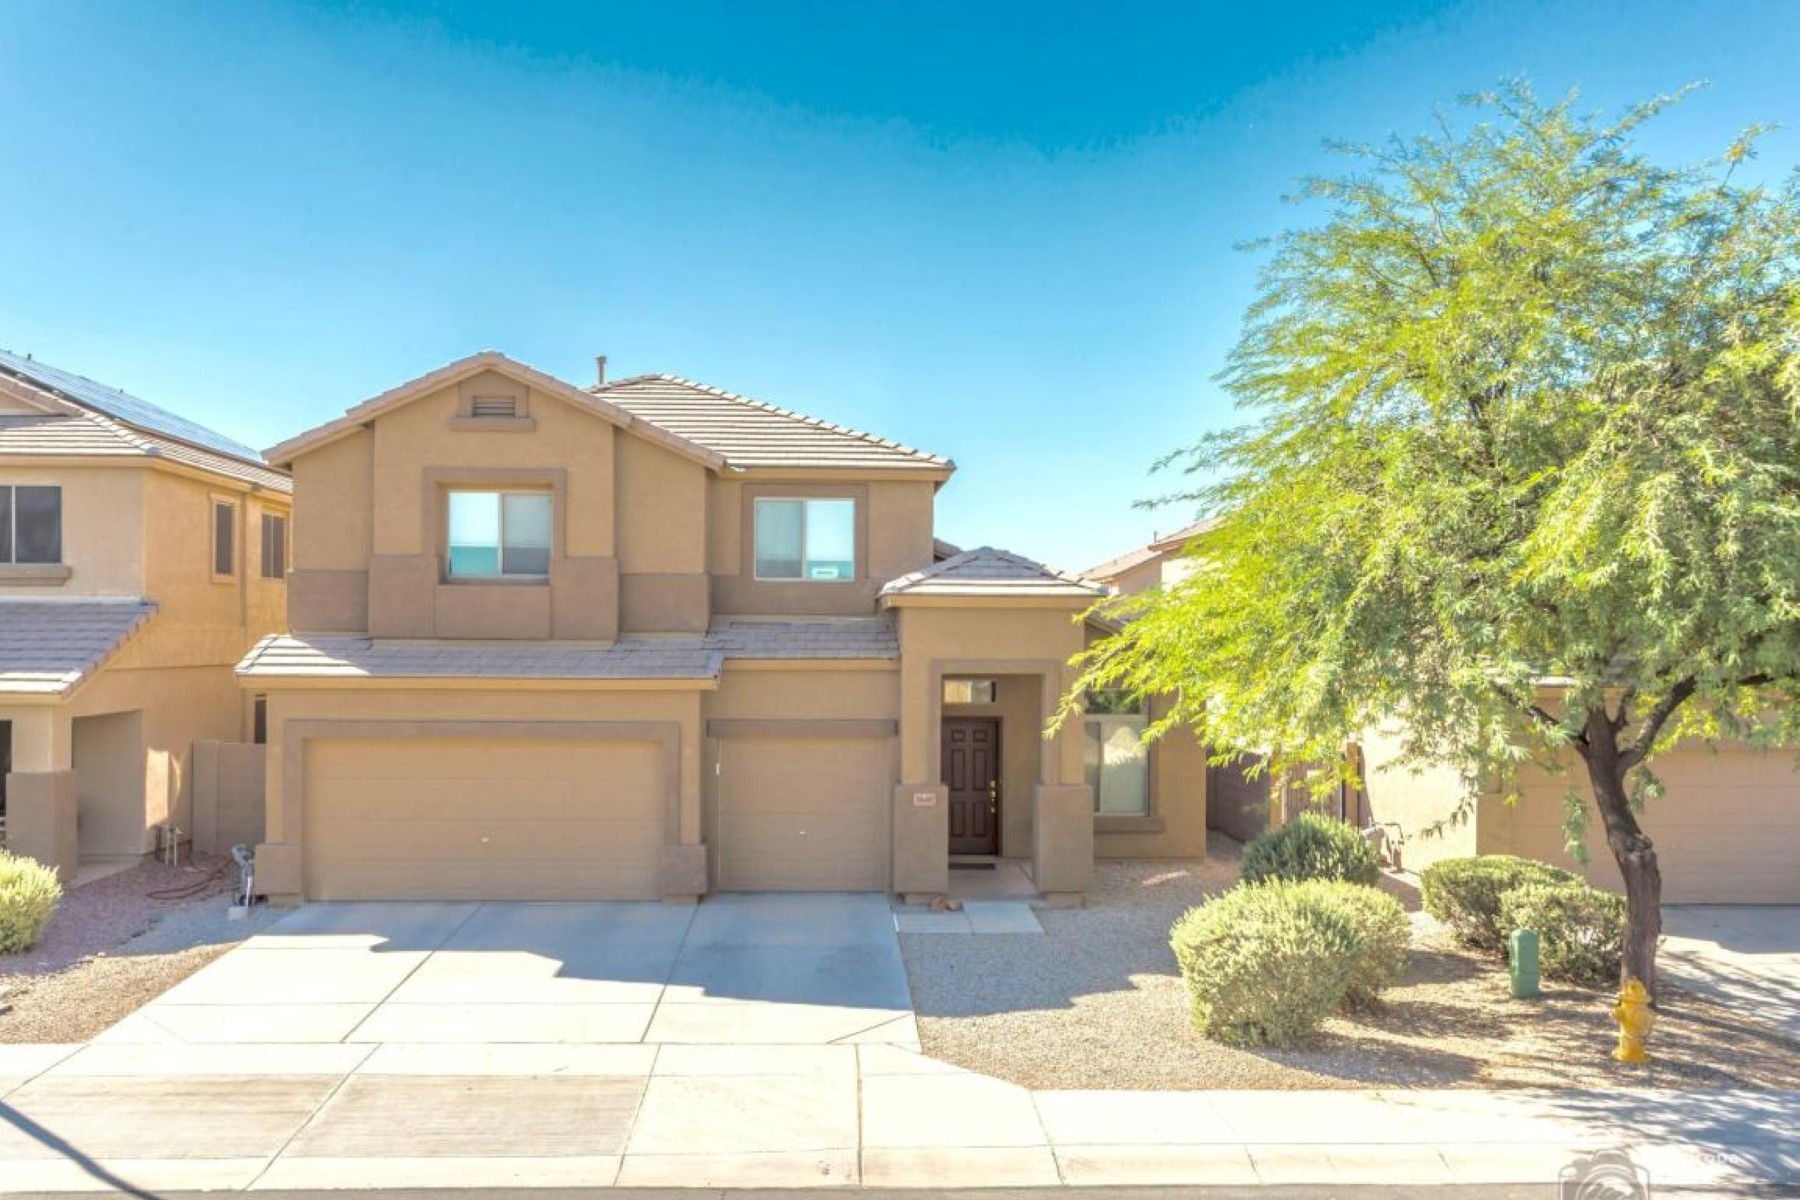 Single Family Home for Sale at Spacious home with vaulted ceilings in all the right places 36487 W Costa Blanca Dr Maricopa, Arizona 85138 United States